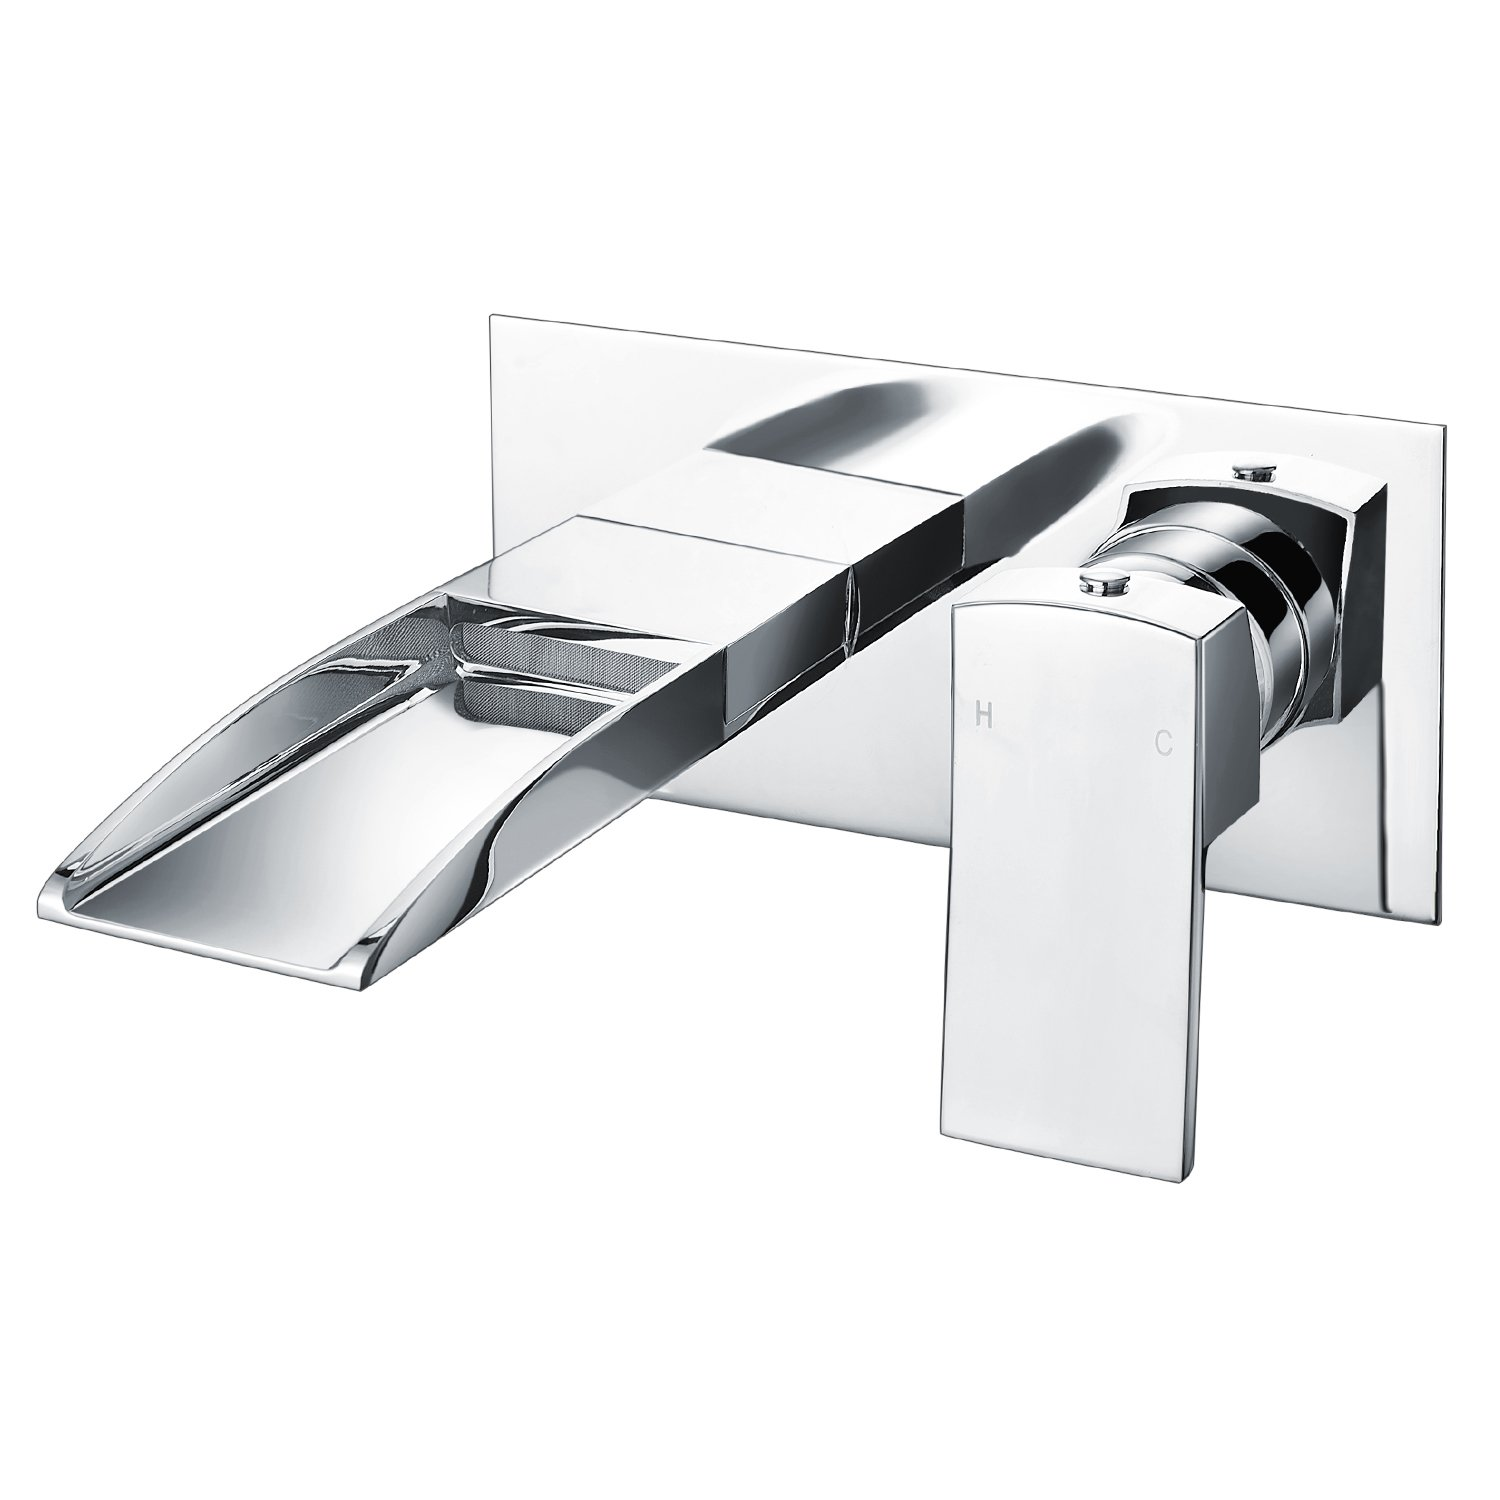 Bath Taps Wall Mounted Waterfall Bathroom Mixer Filler Tap Chrome WasserRhythm